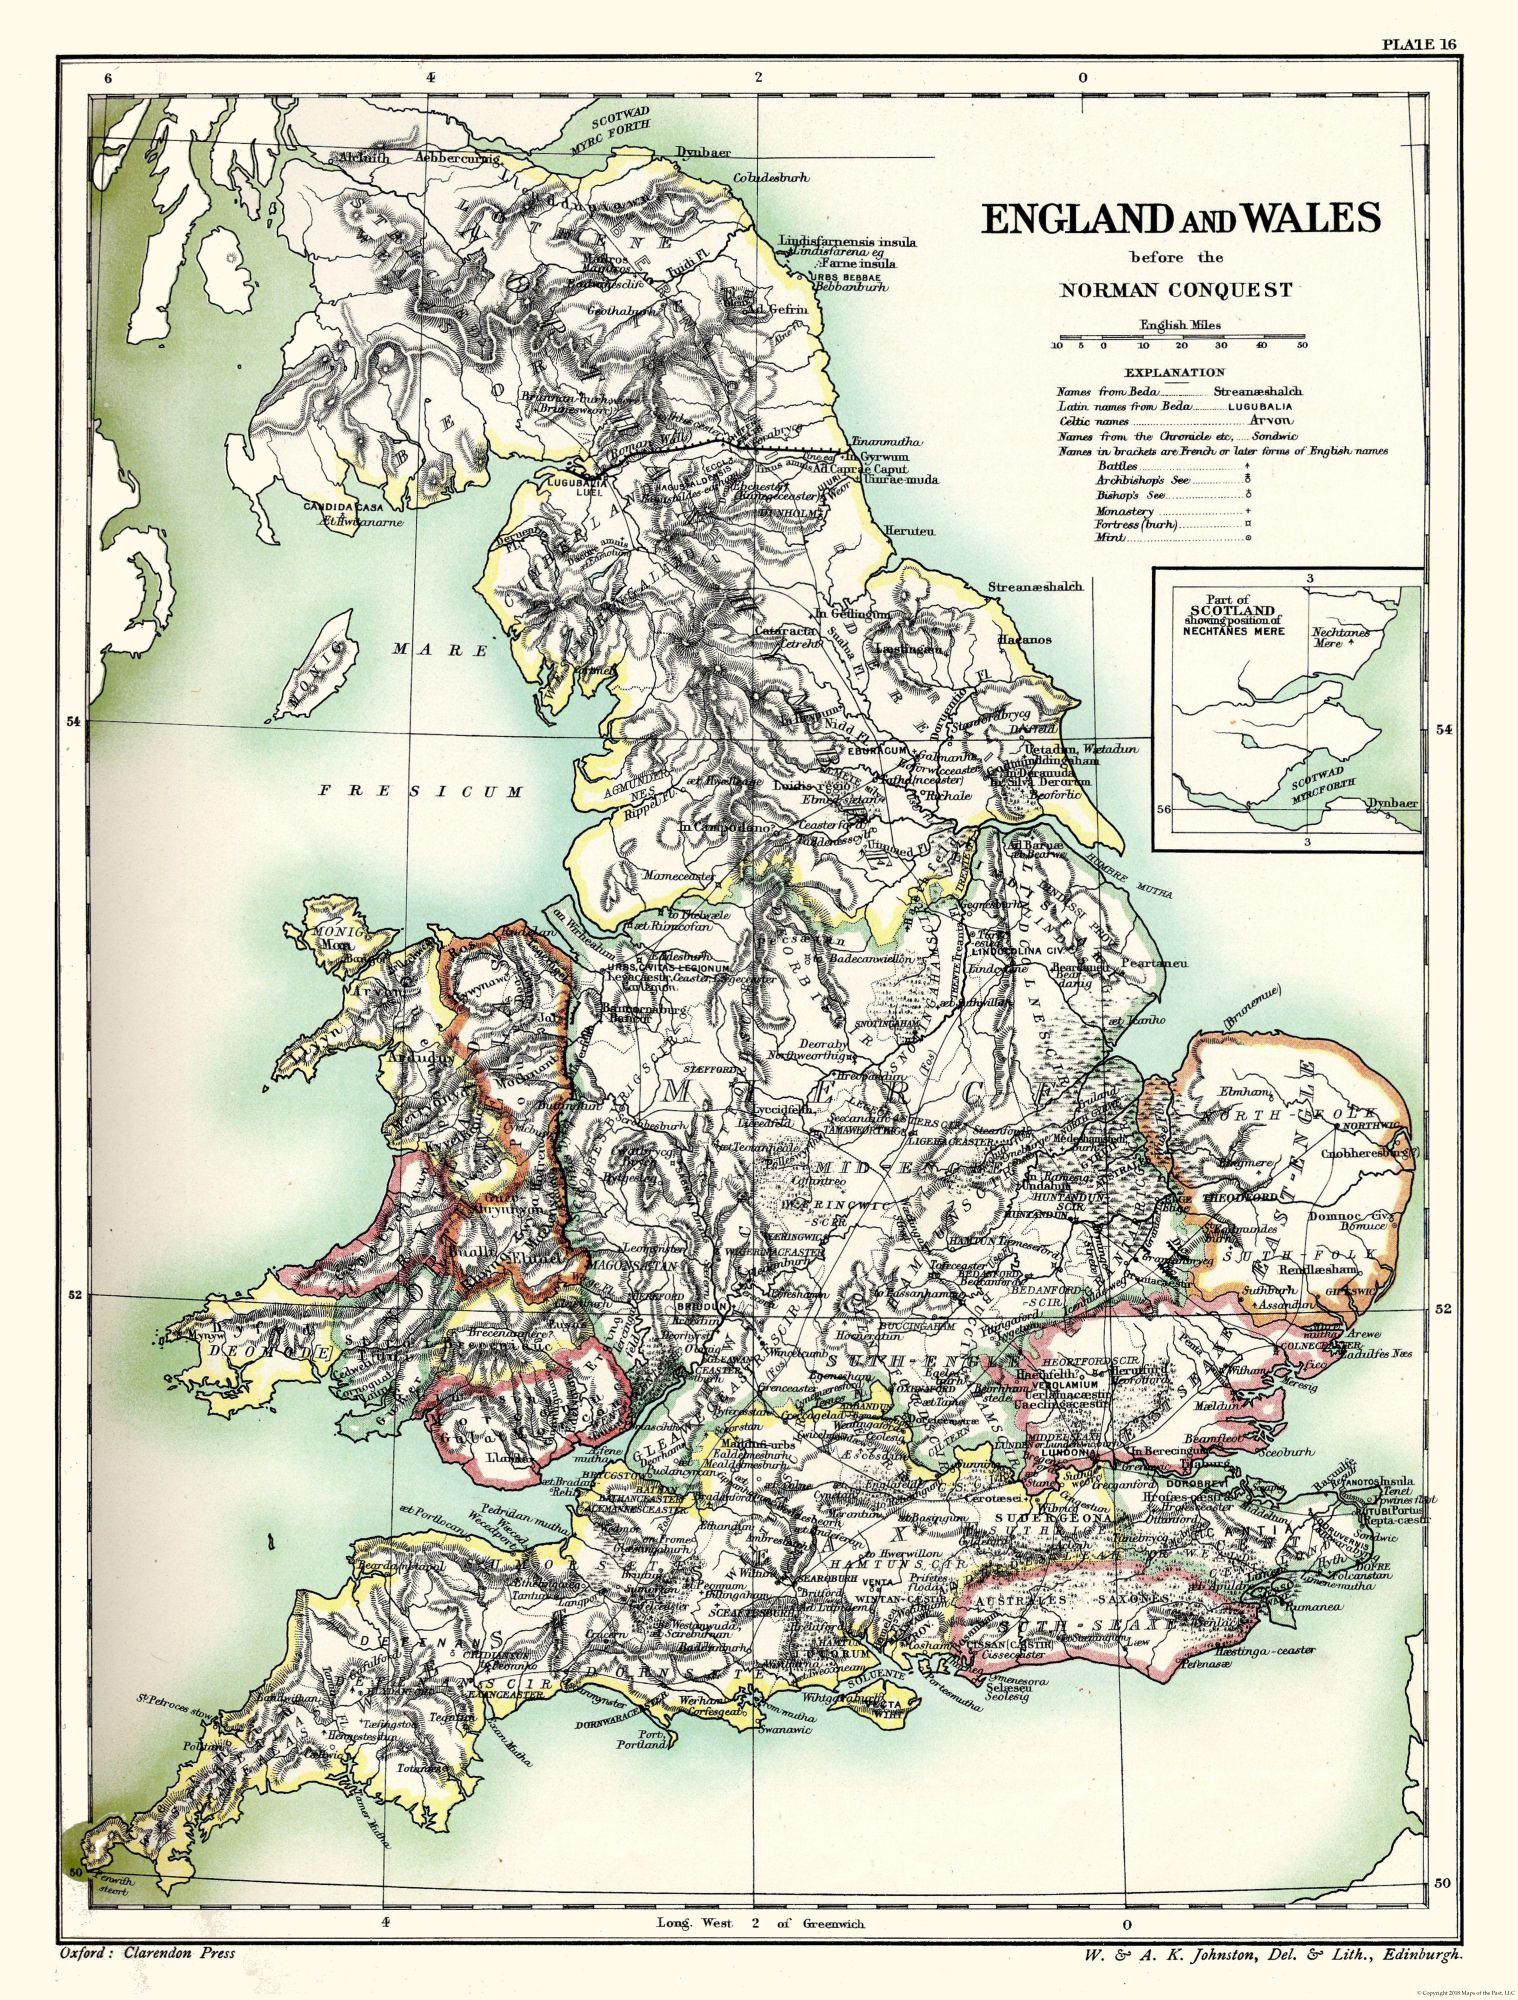 Poole England Map.Old International Maps England And Wales Before Norman Conquest